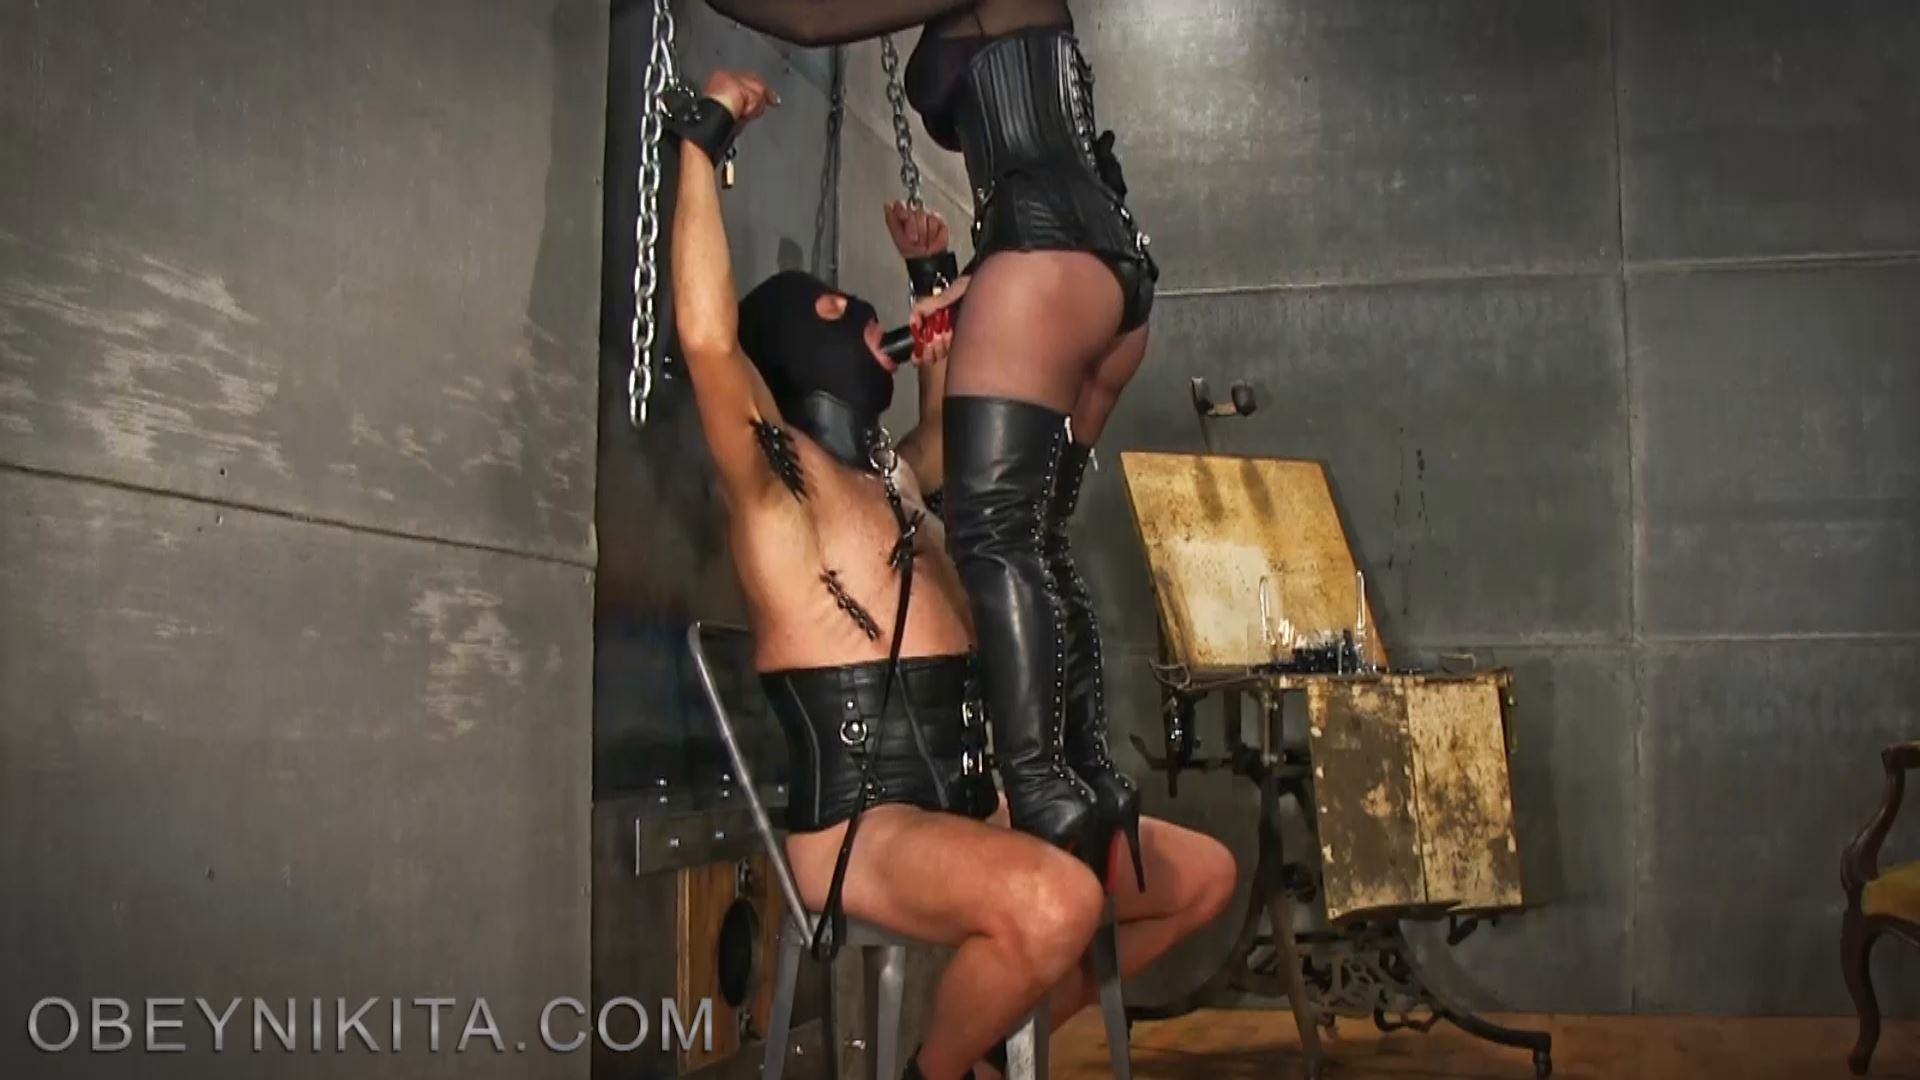 SUFFER TO SUCK MY COCK BITCH. FEATURING: MISTRESS NIKITA - OBEYNIKITA - FULL HD/1080p/MP4